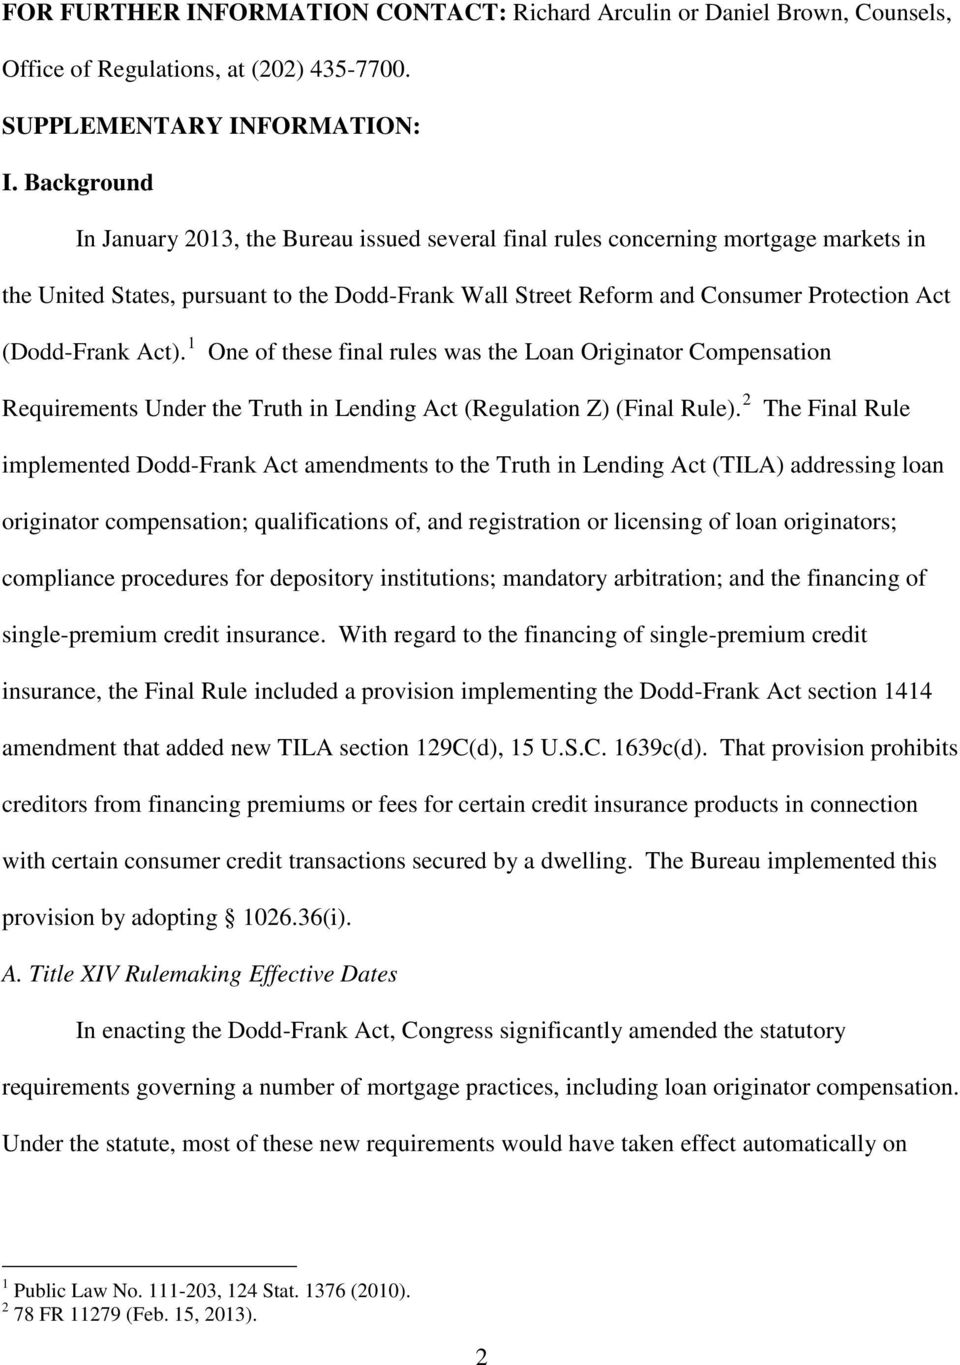 (Dodd-Frank Act). 1 One of these final rules was the Loan Originator Compensation Requirements Under the Truth in Lending Act (Regulation Z) (Final Rule).